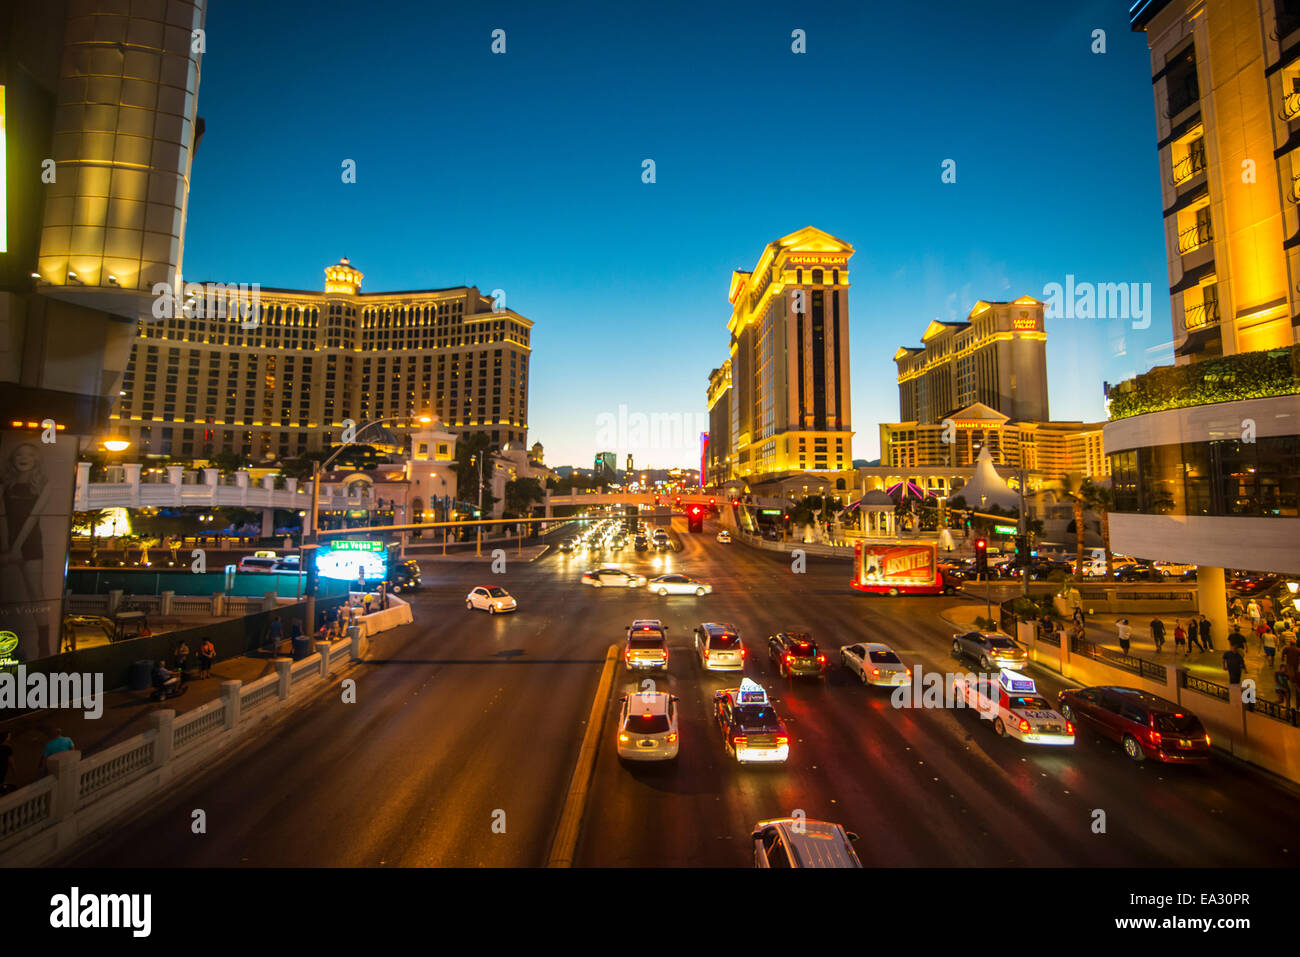 View over The Strip, Las Vegas, Nevada, United States of America, North America - Stock Image